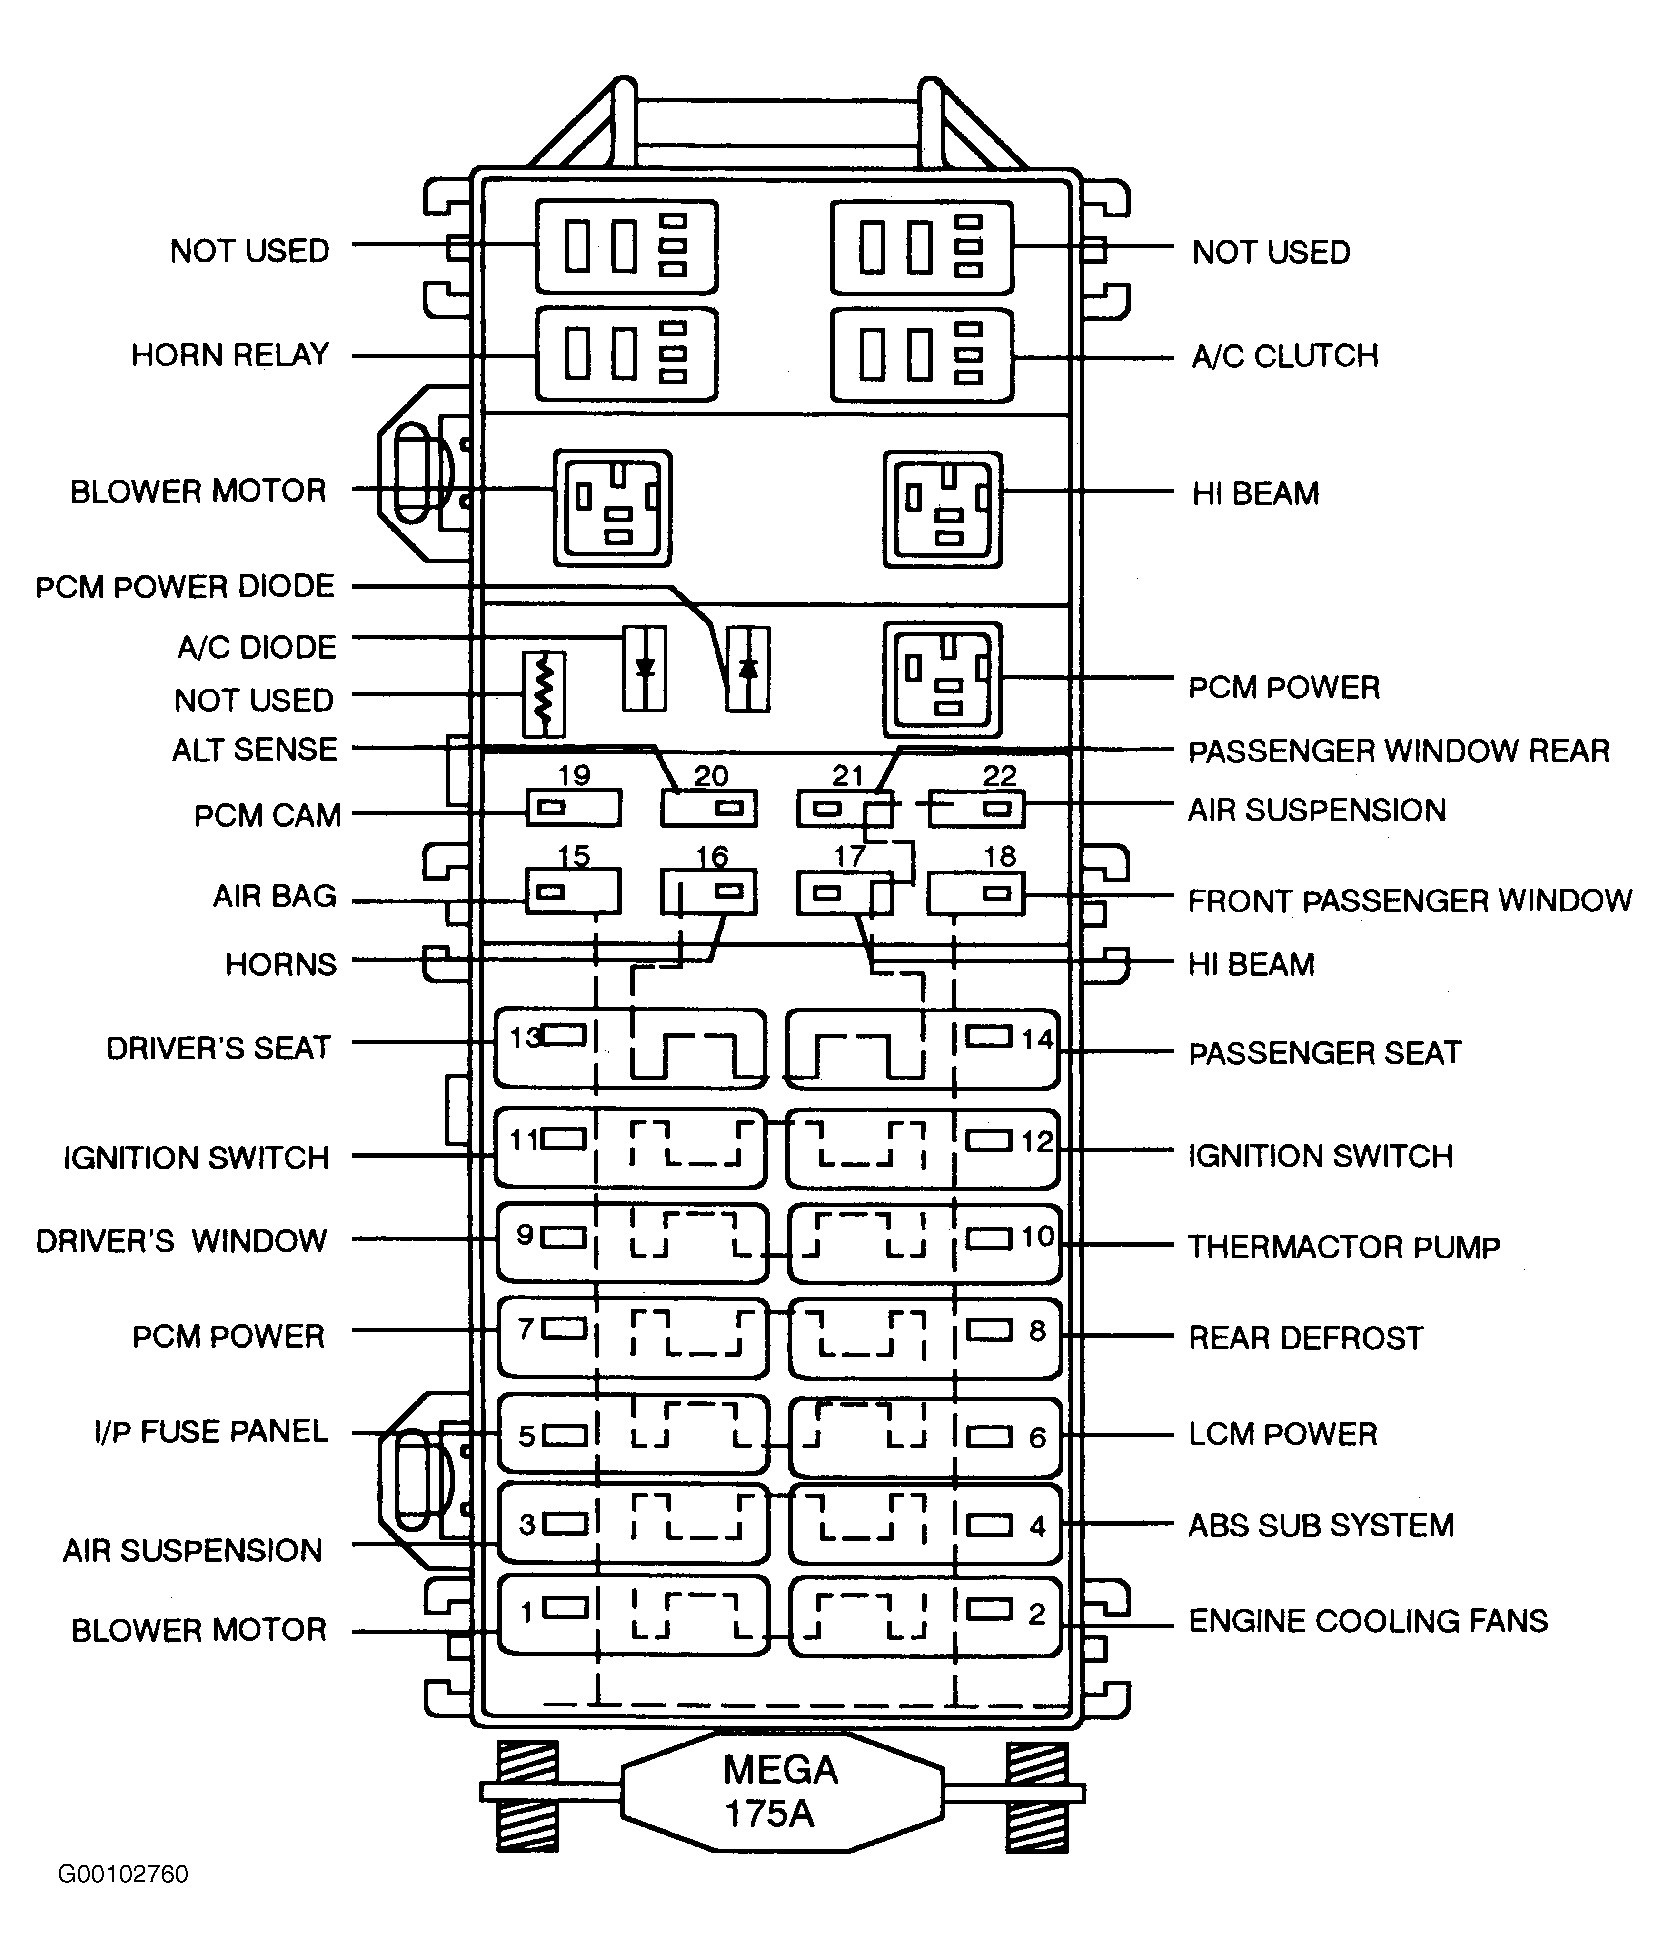 1984 Lincoln Town Car Fuse Panel Diagram | Wiring Library